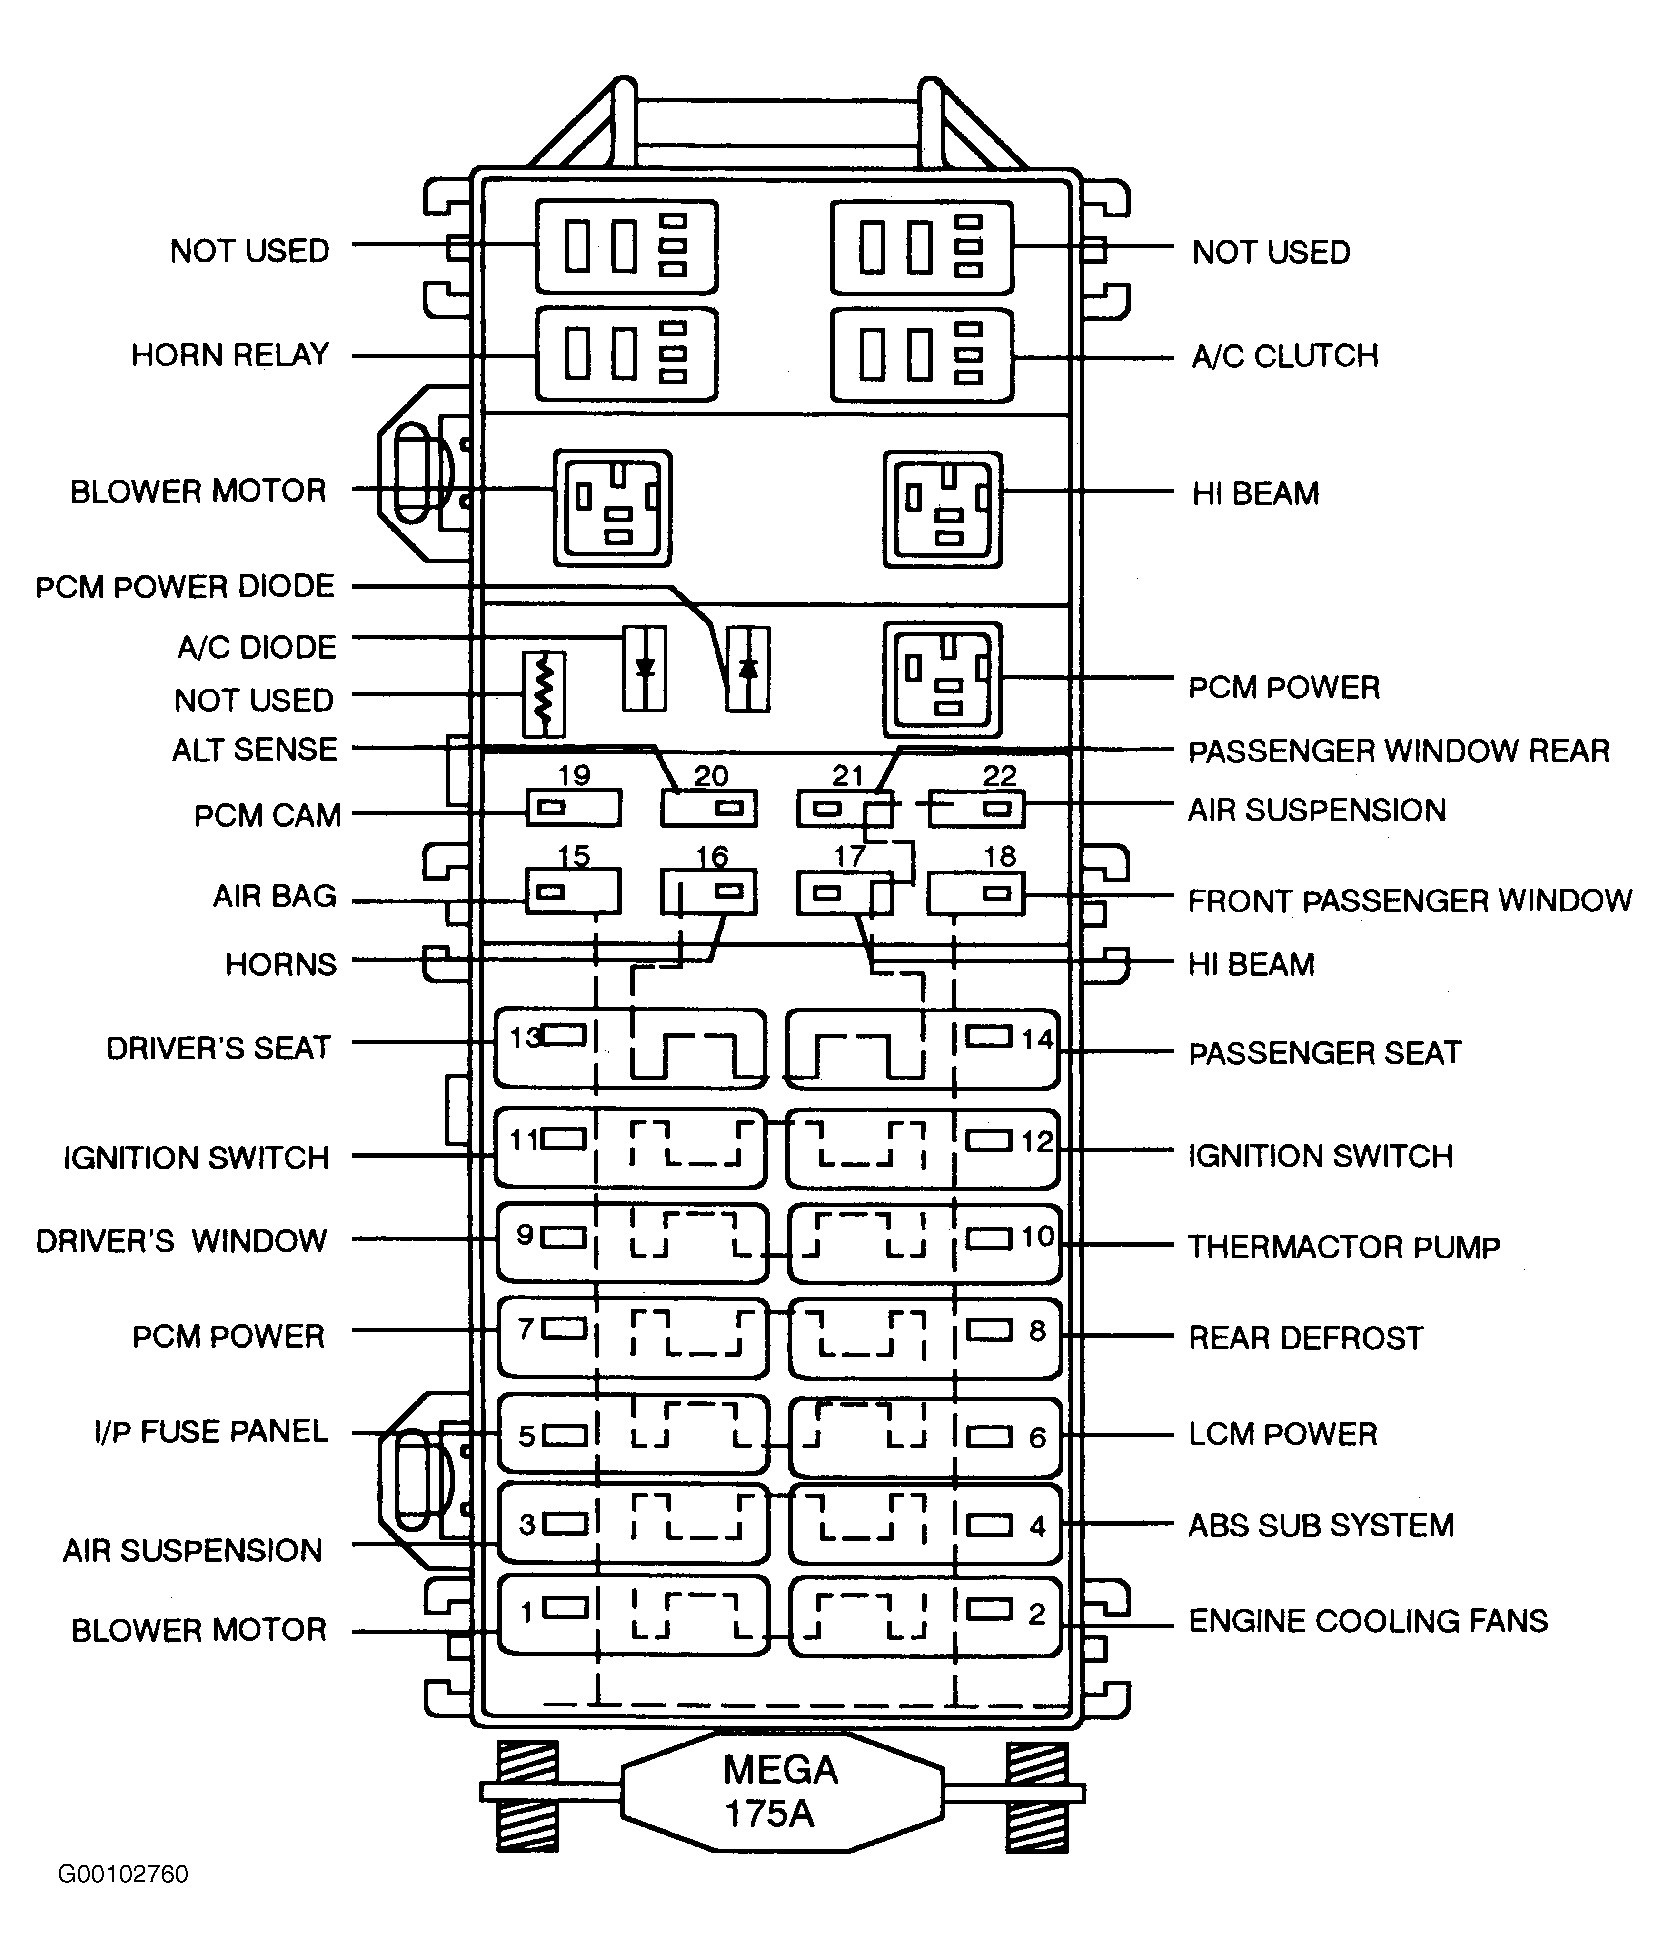 1984 Lincoln Town Car Fuse Panel Diagram | Wiring Library